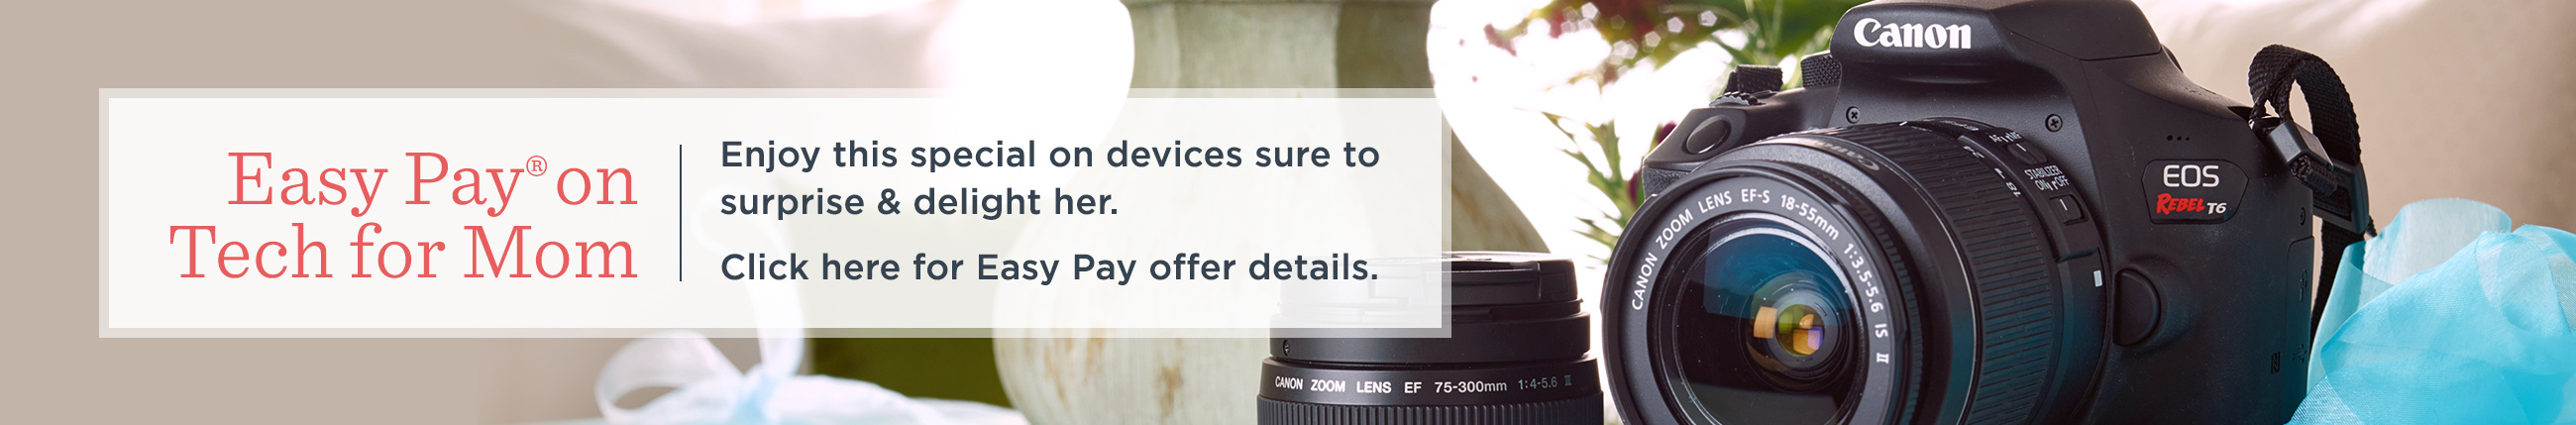 Easy Pay® on Tech for Mom -- Enjoy this special on devices sure to surprise & delight her.  Click here for Easy Pay offer details.